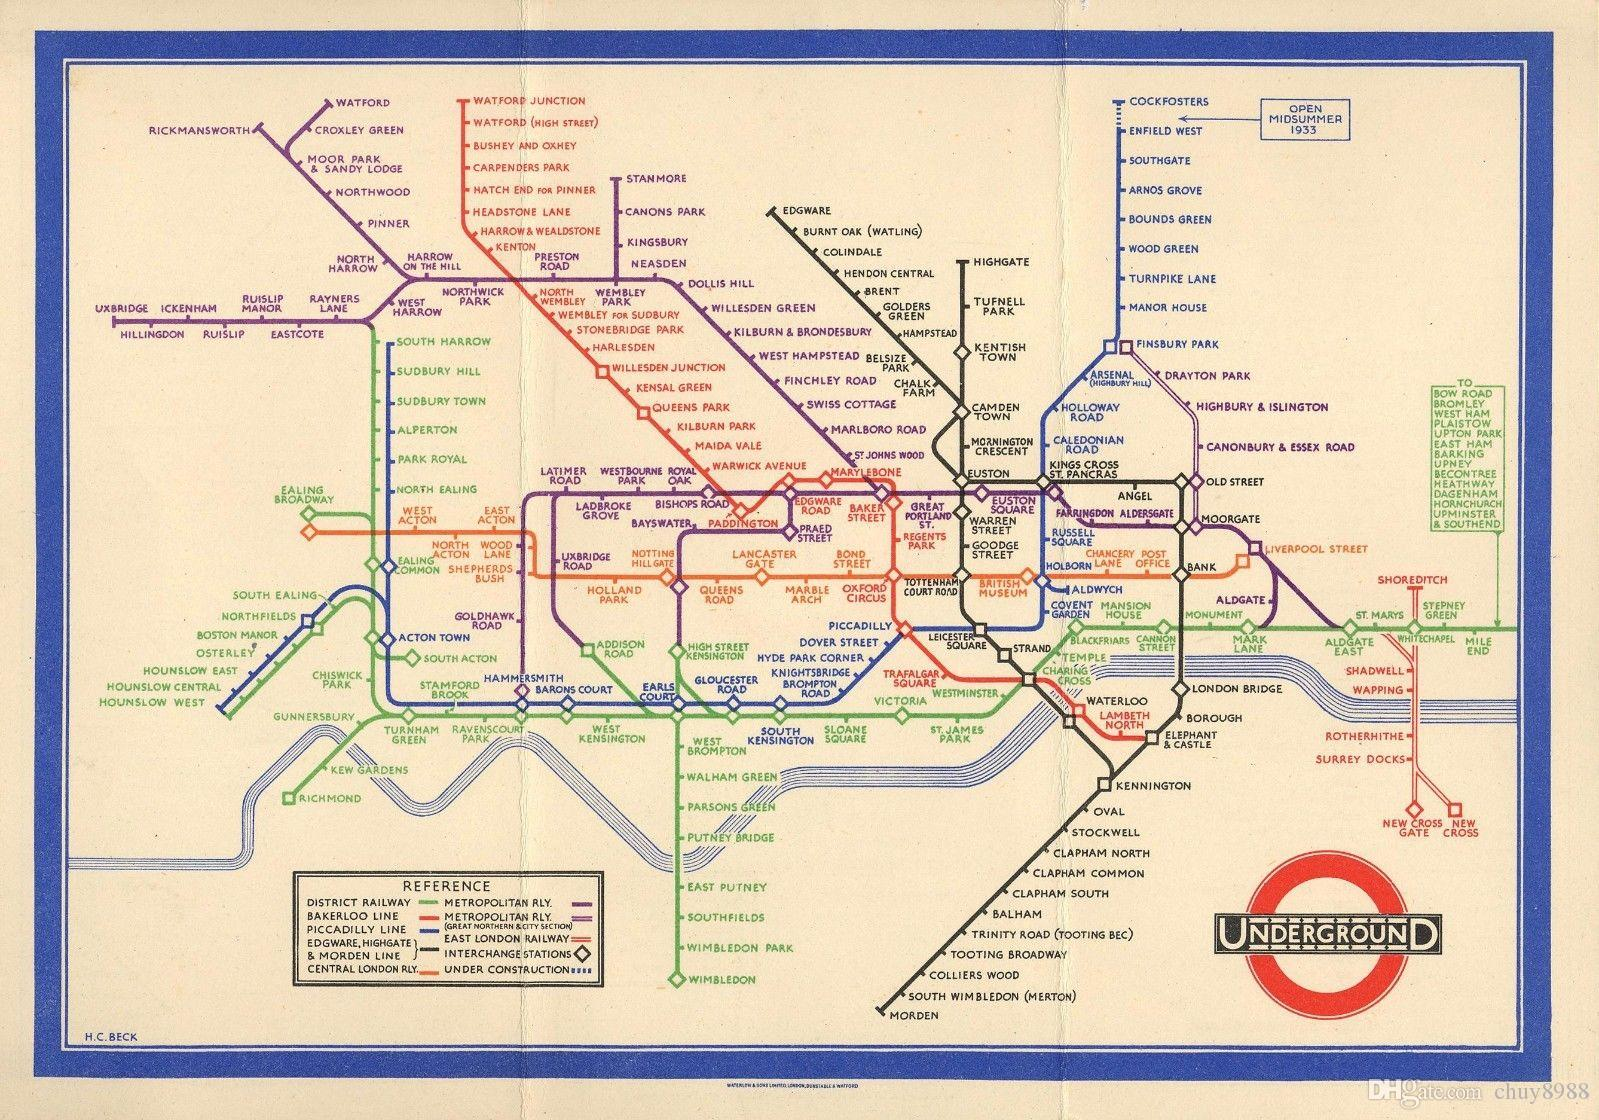 Easy London Map.2019 Retro London Underground Tube Map 1933 Art Silk Print Poster